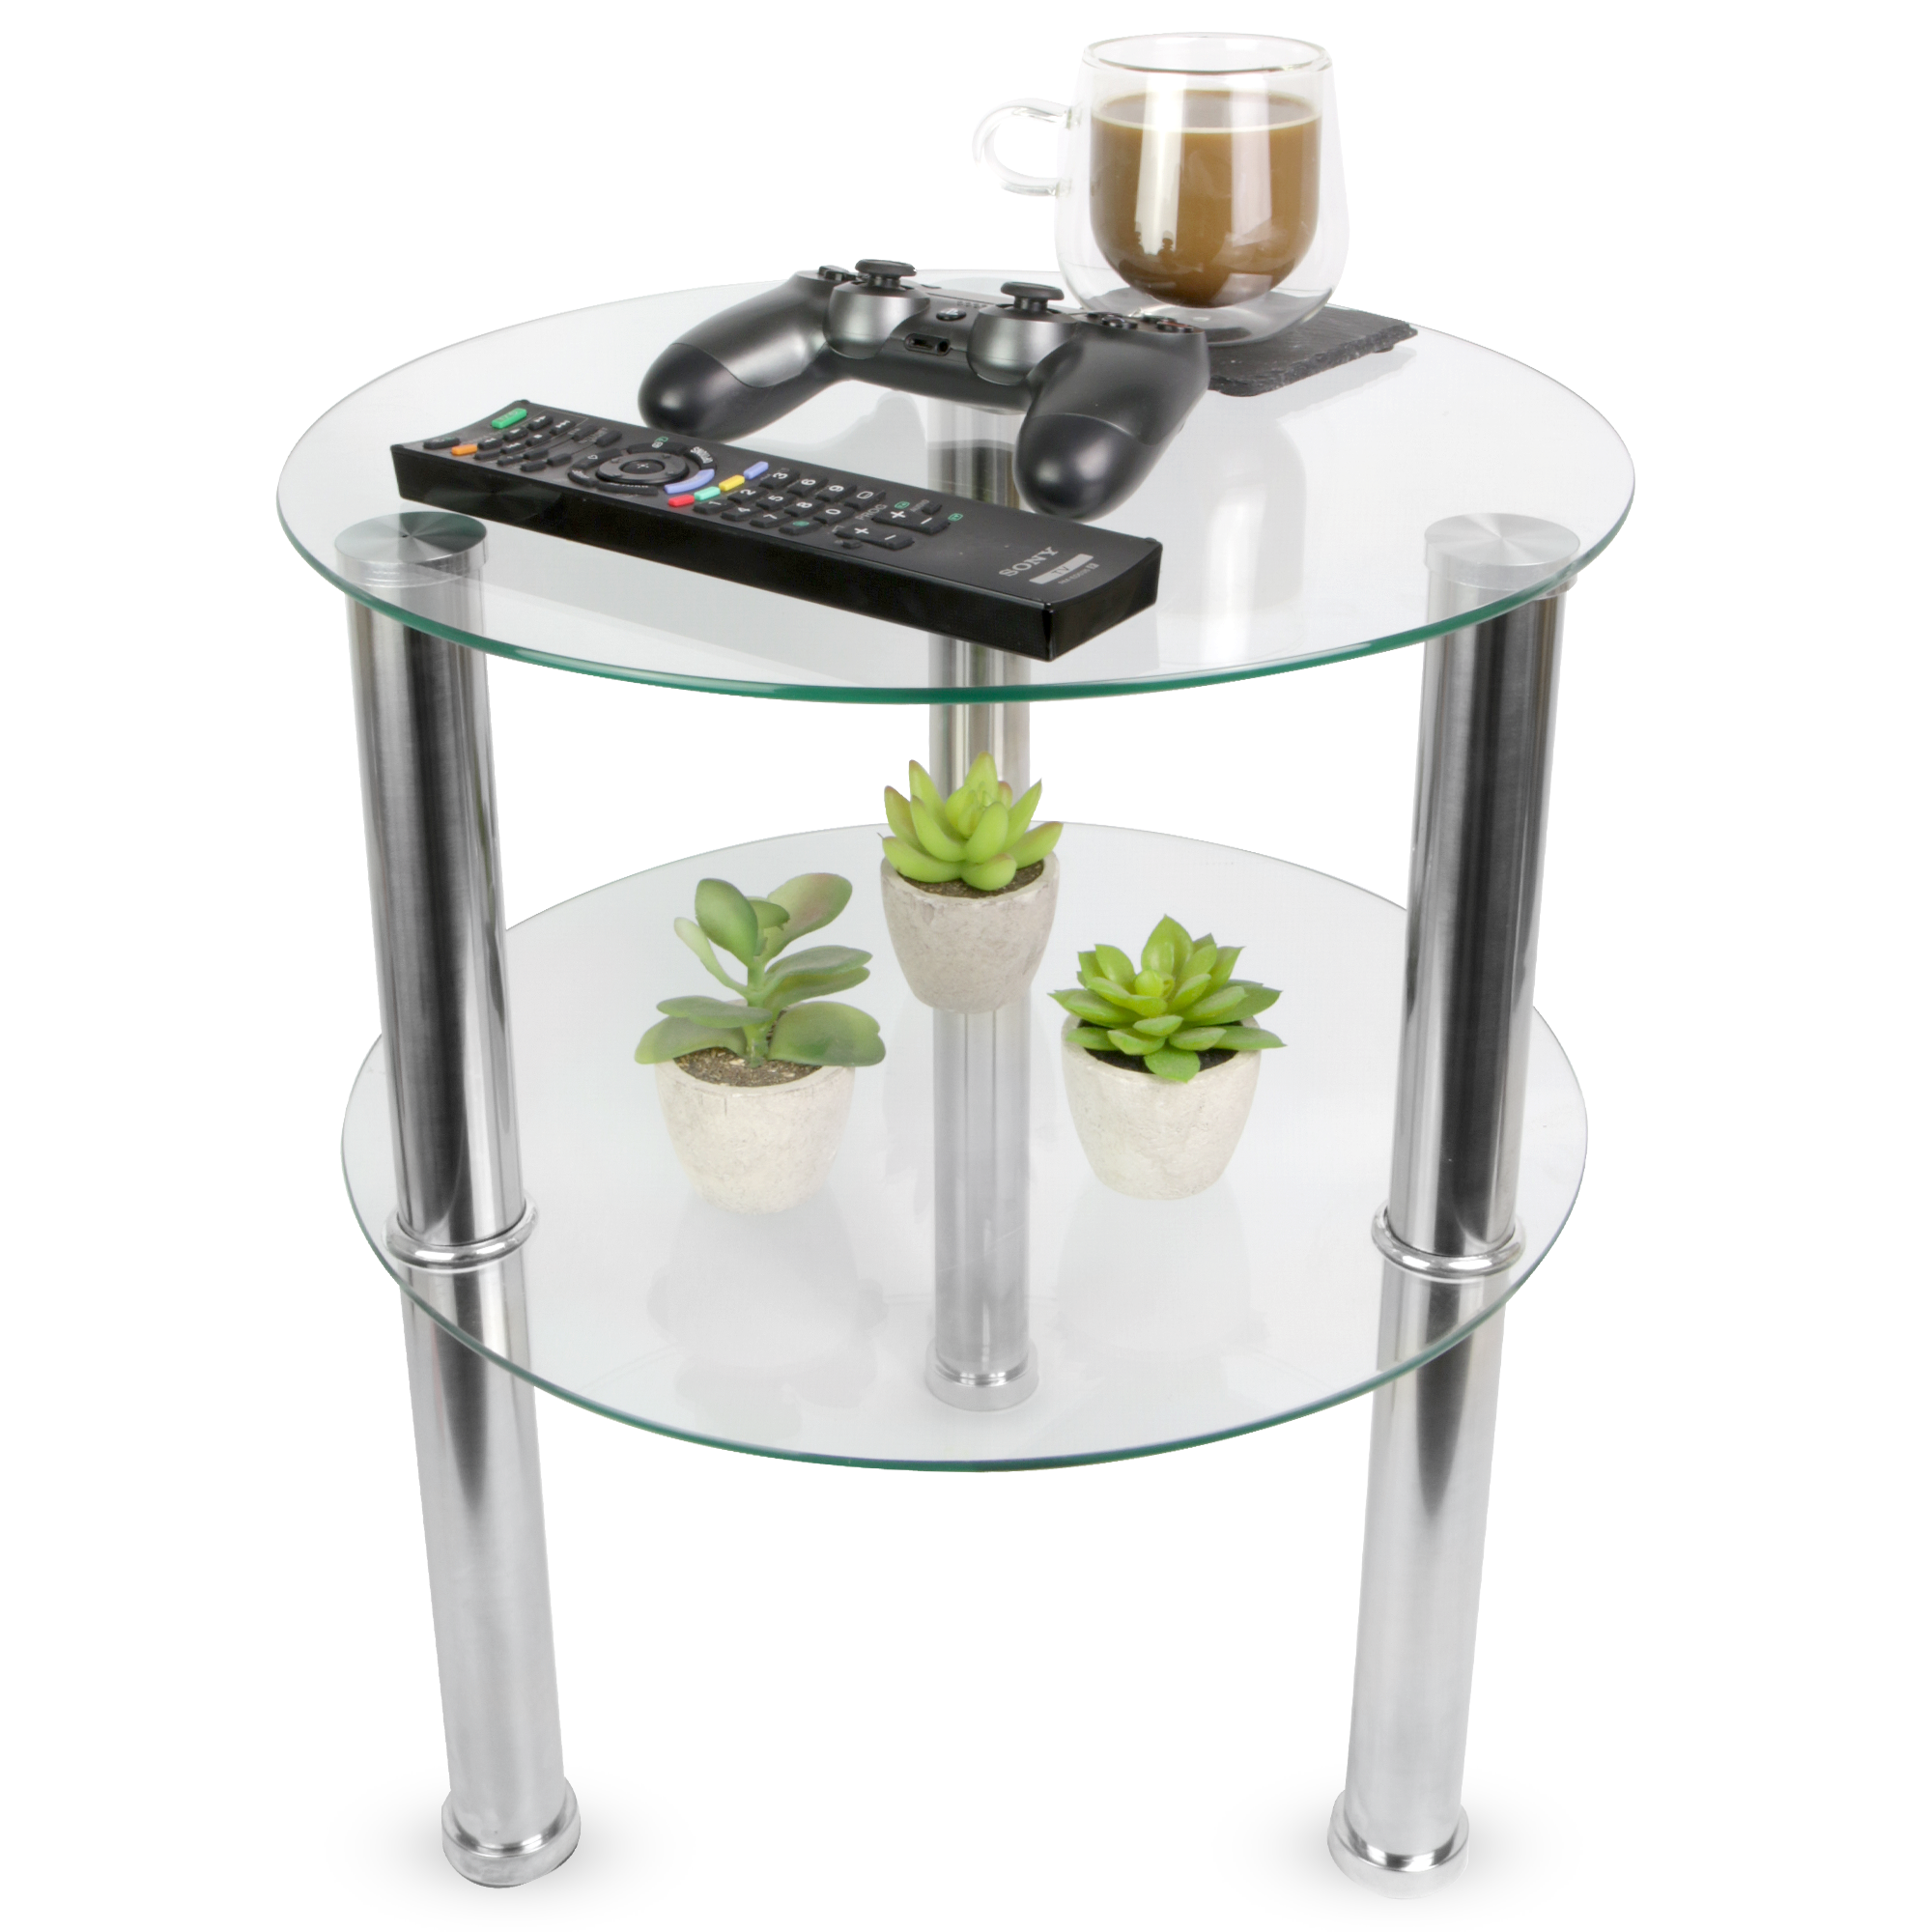 Small Round Glass 2 Tier Table Sofa Side Storage Shelf